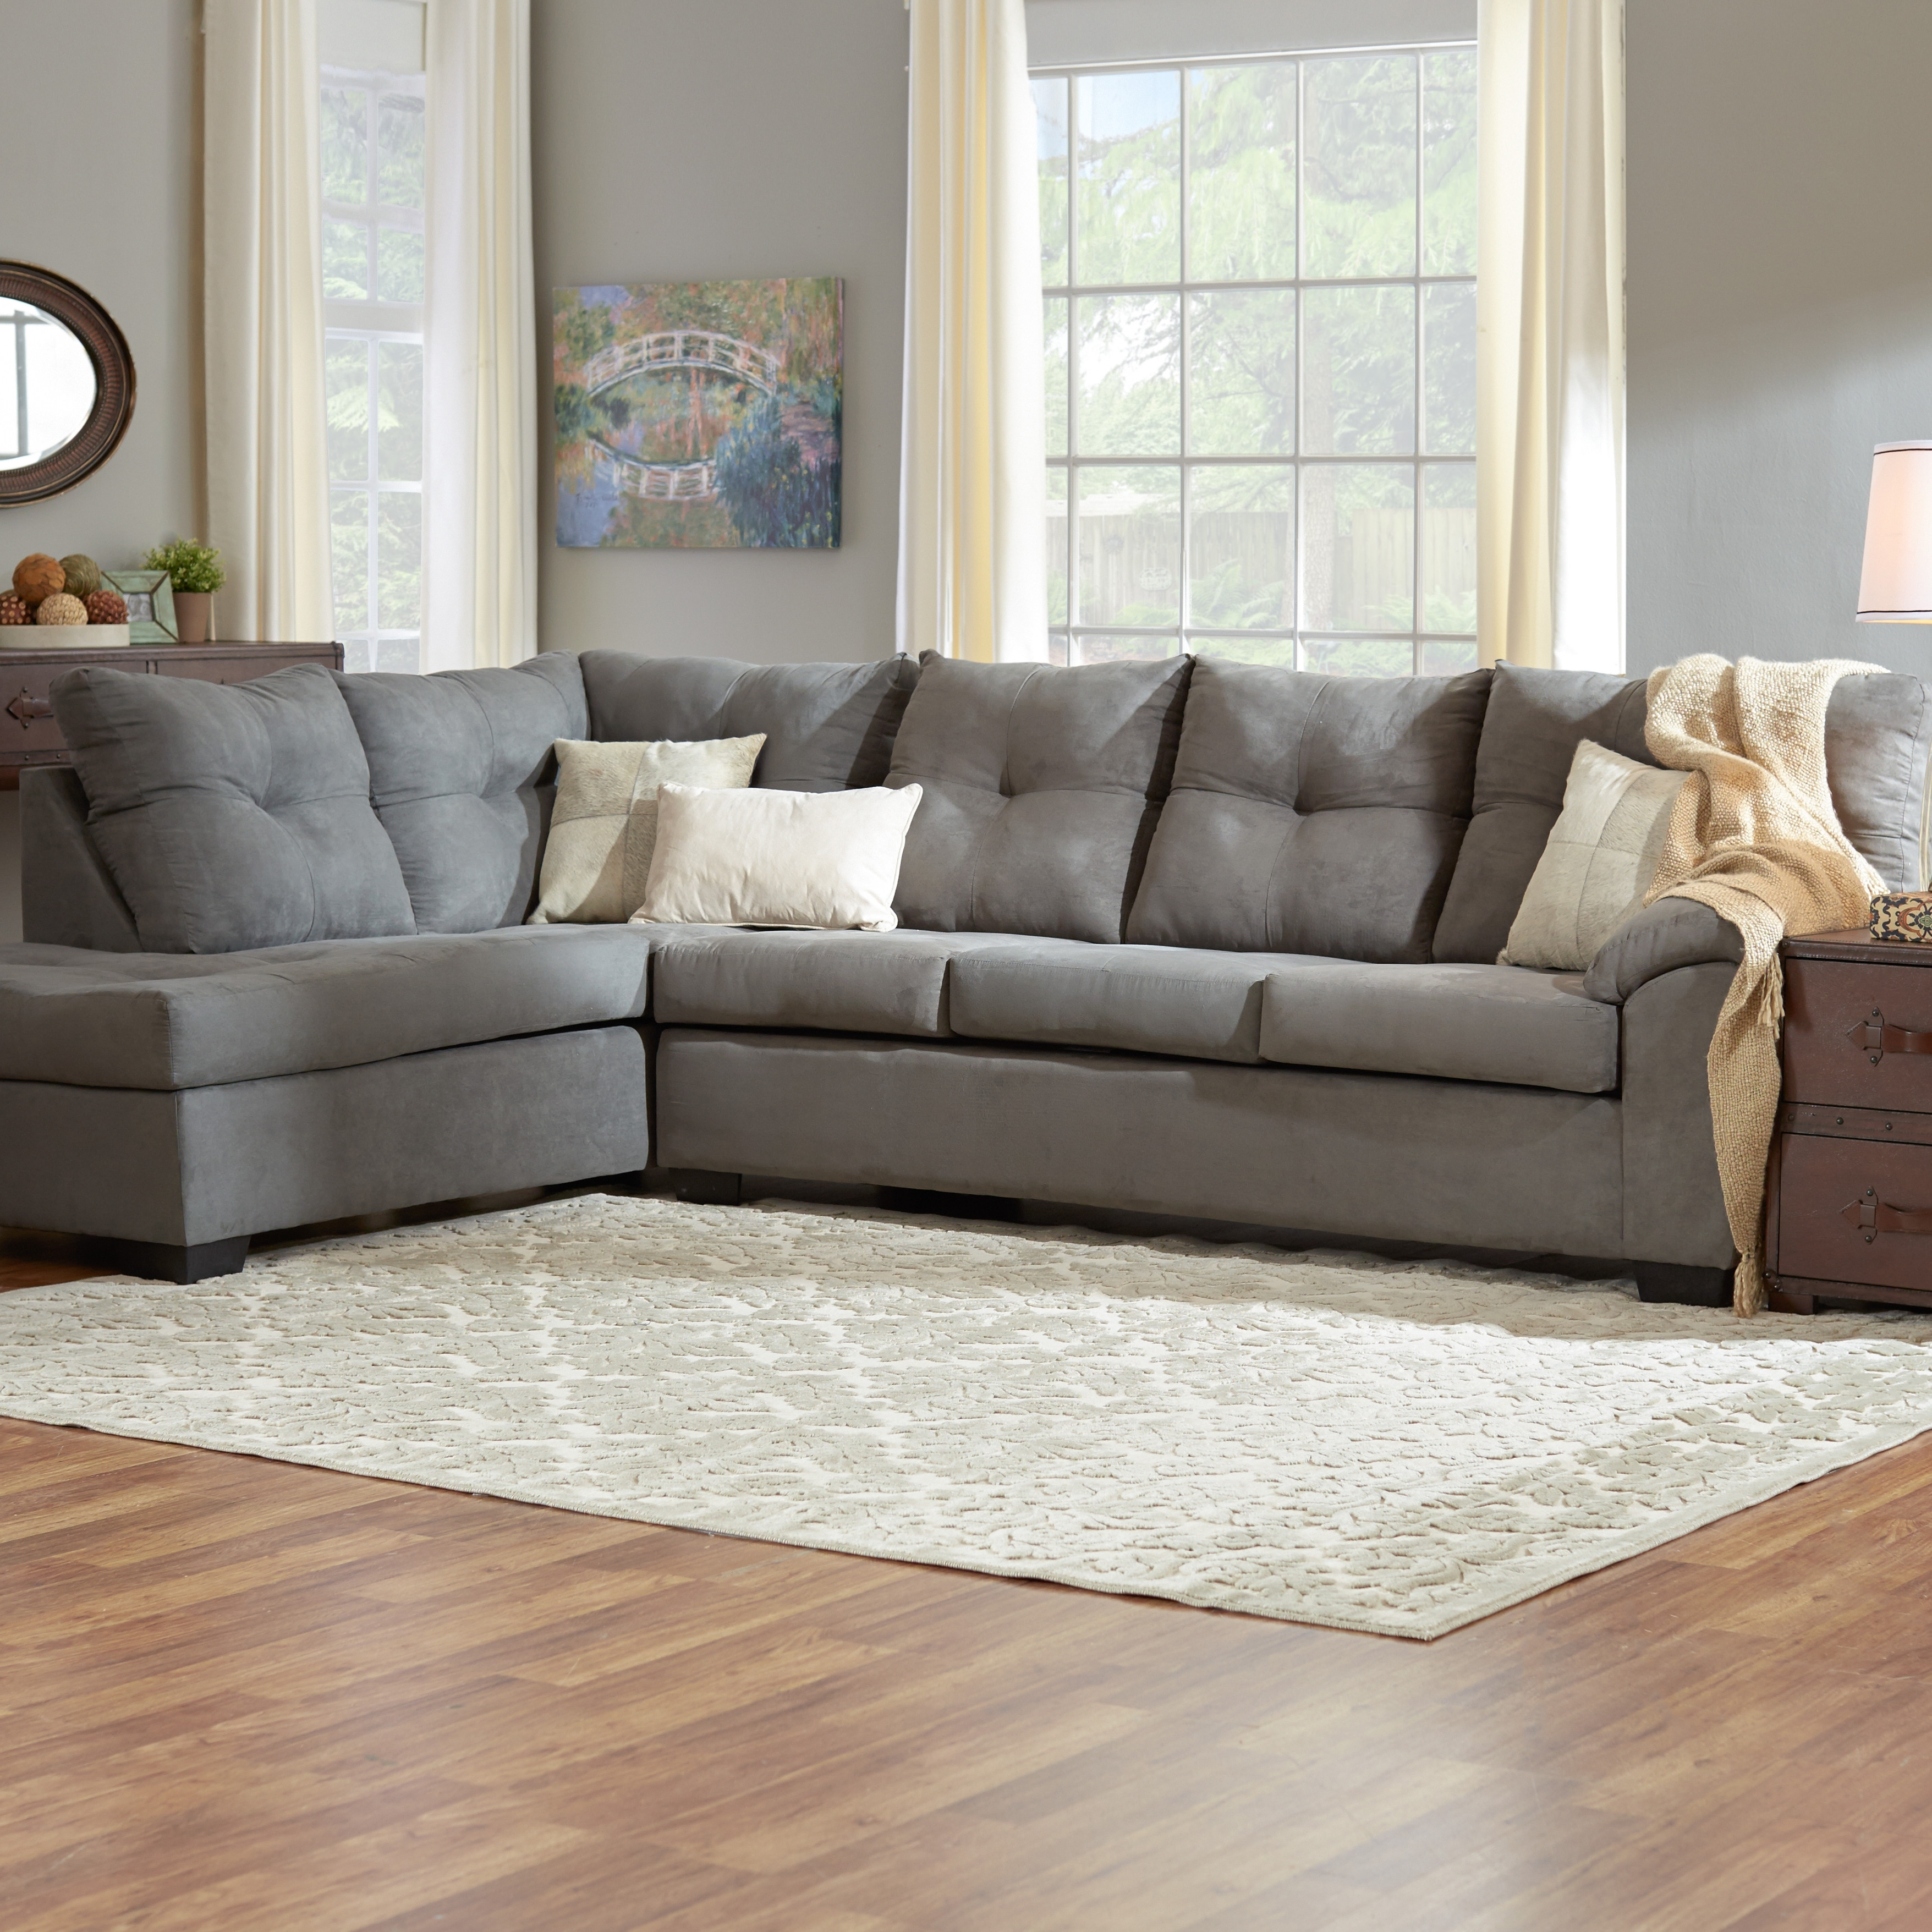 Widely Used Cool Wayfair Sofa With Furniture Camden Sofa Sectional Couch For In Wayfair Sectional Sofas (View 5 of 15)